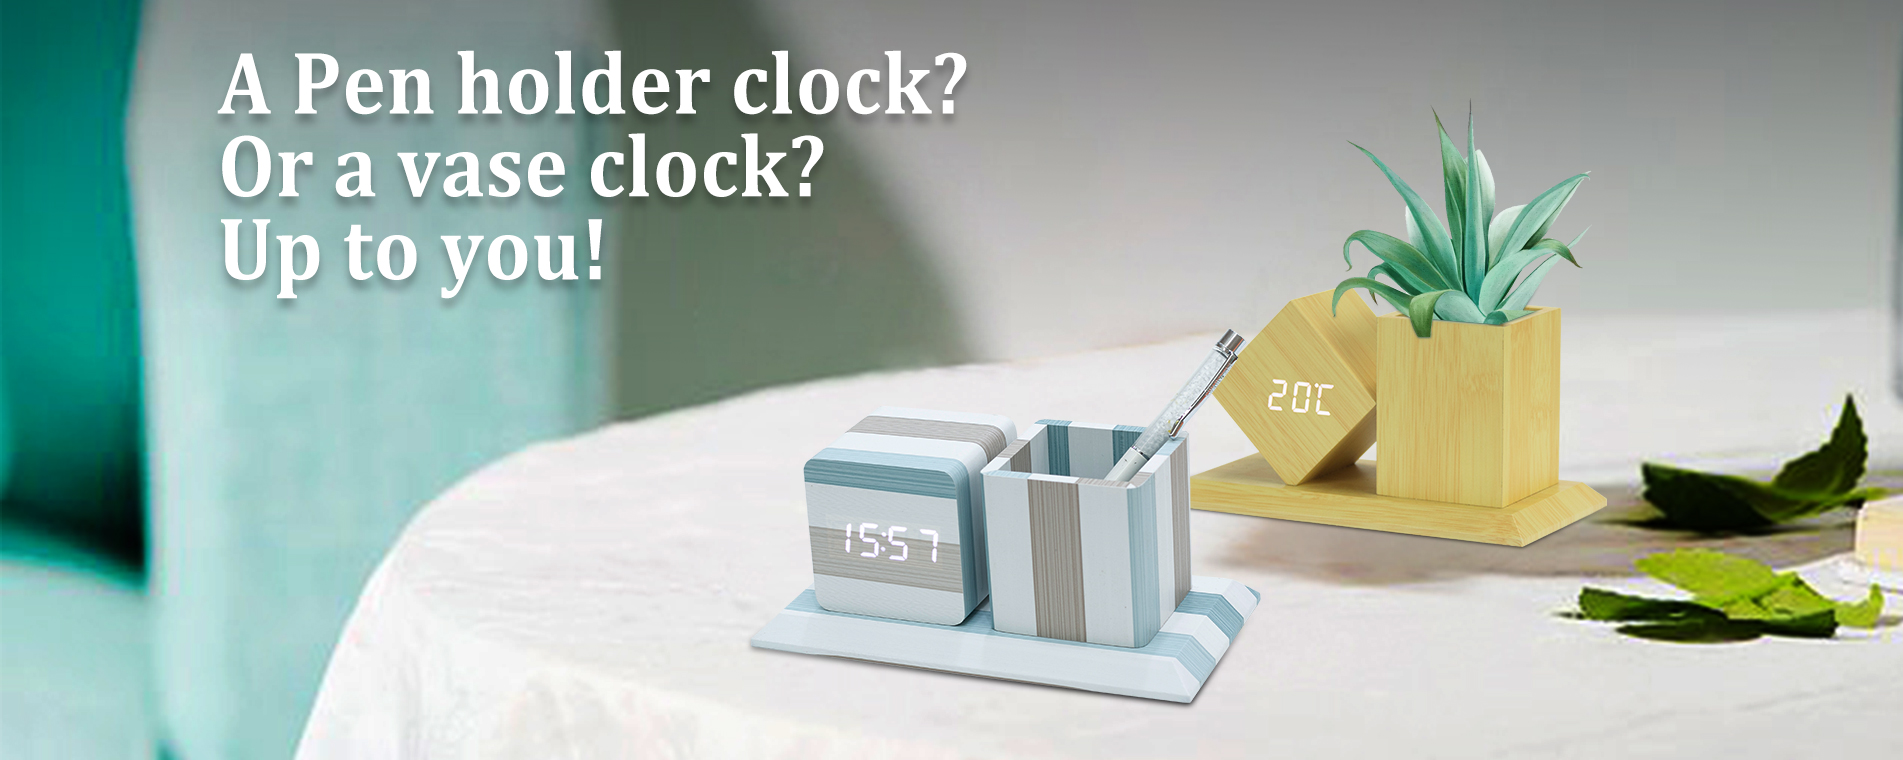 Pen holder clock or vase clock